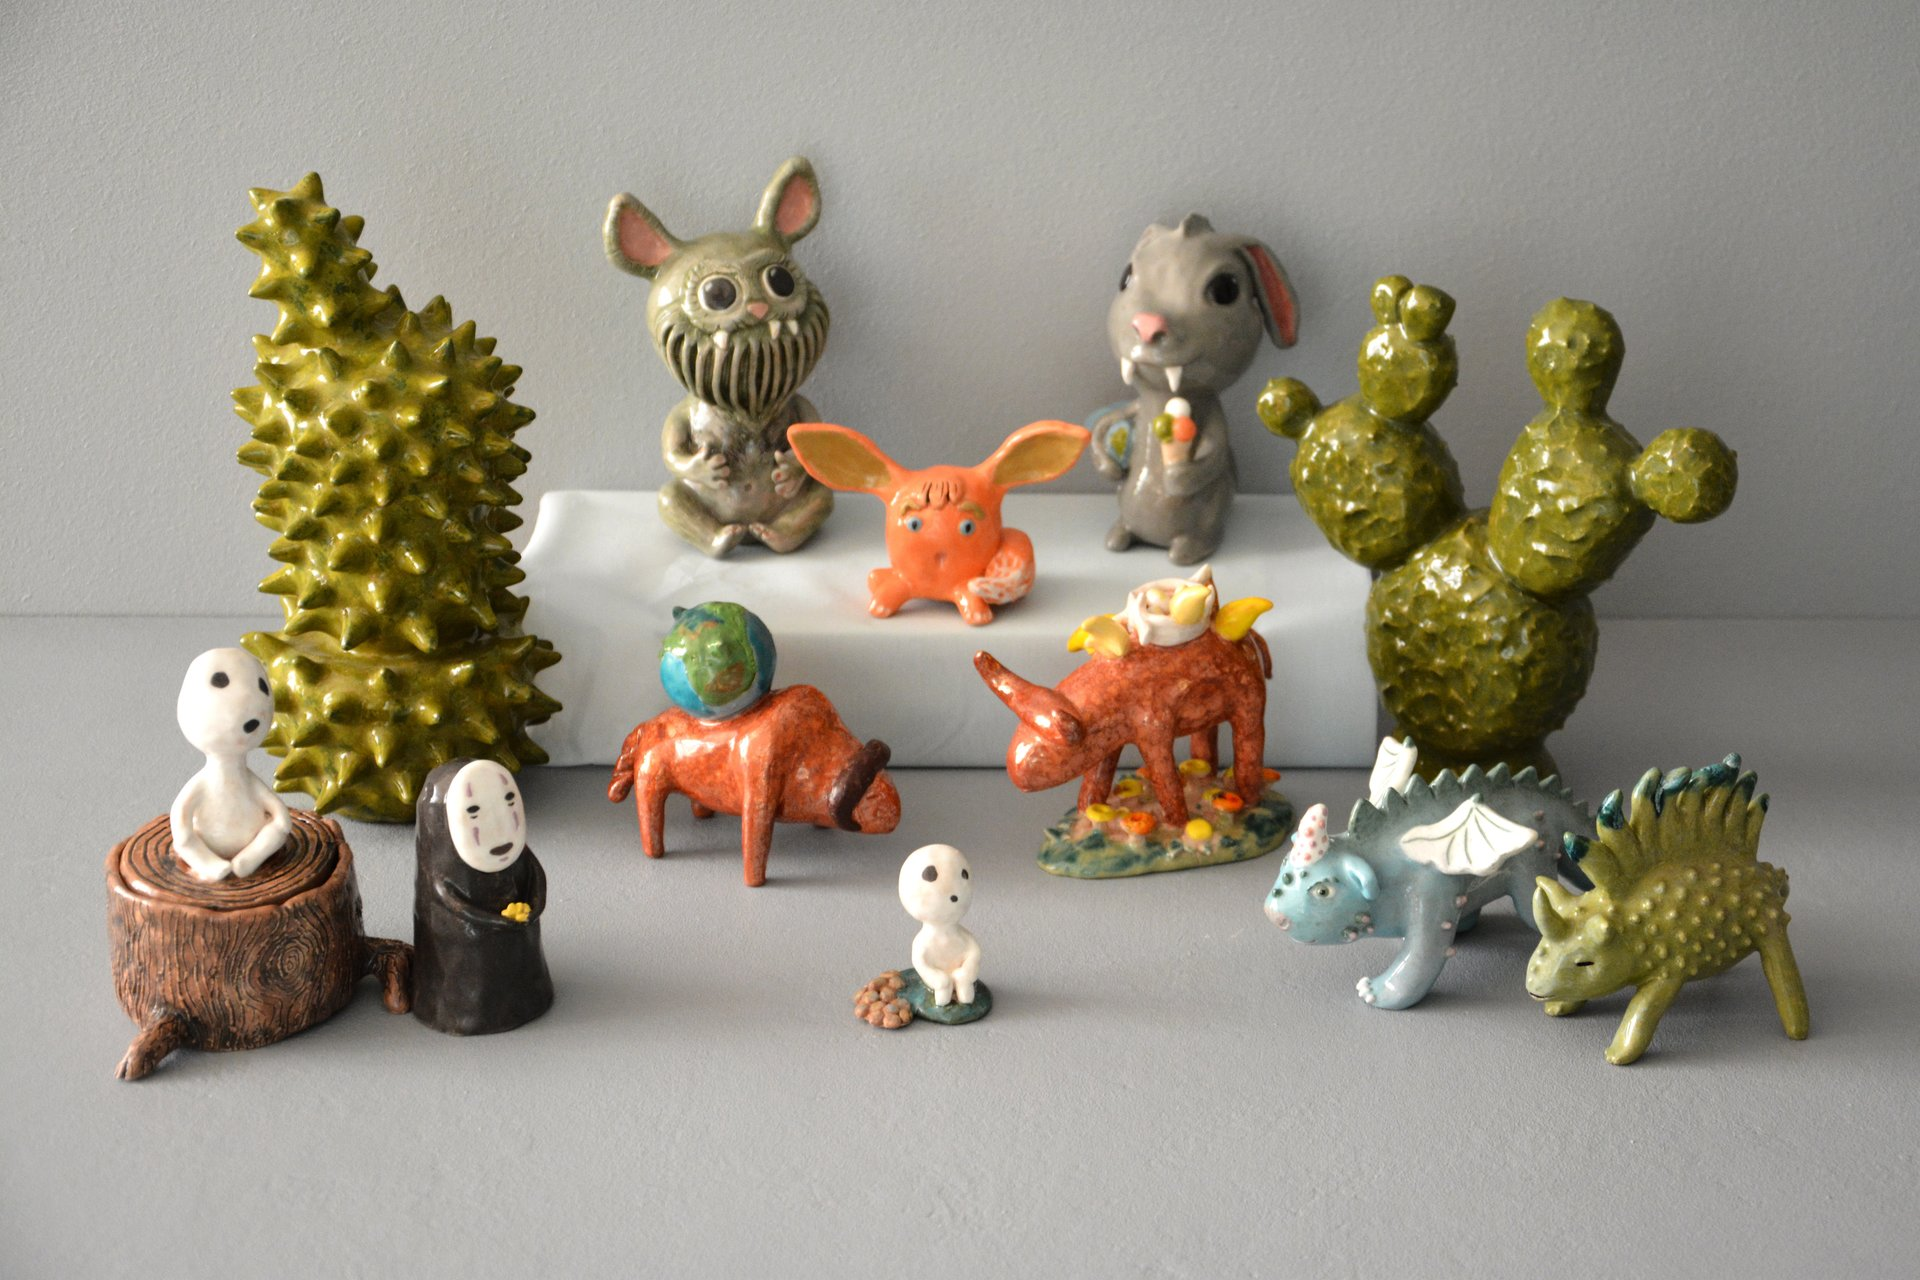 Ceramic handmade figurines